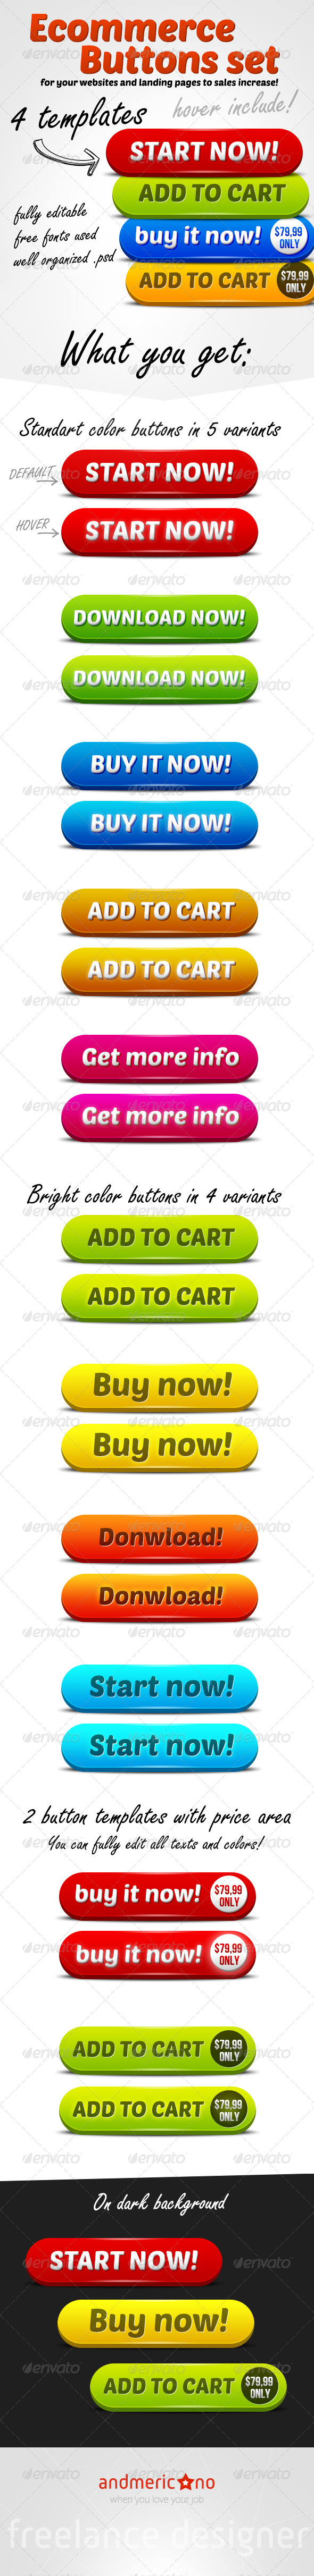 GraphicRiver Ecommerce Big Buttons Set 6537424